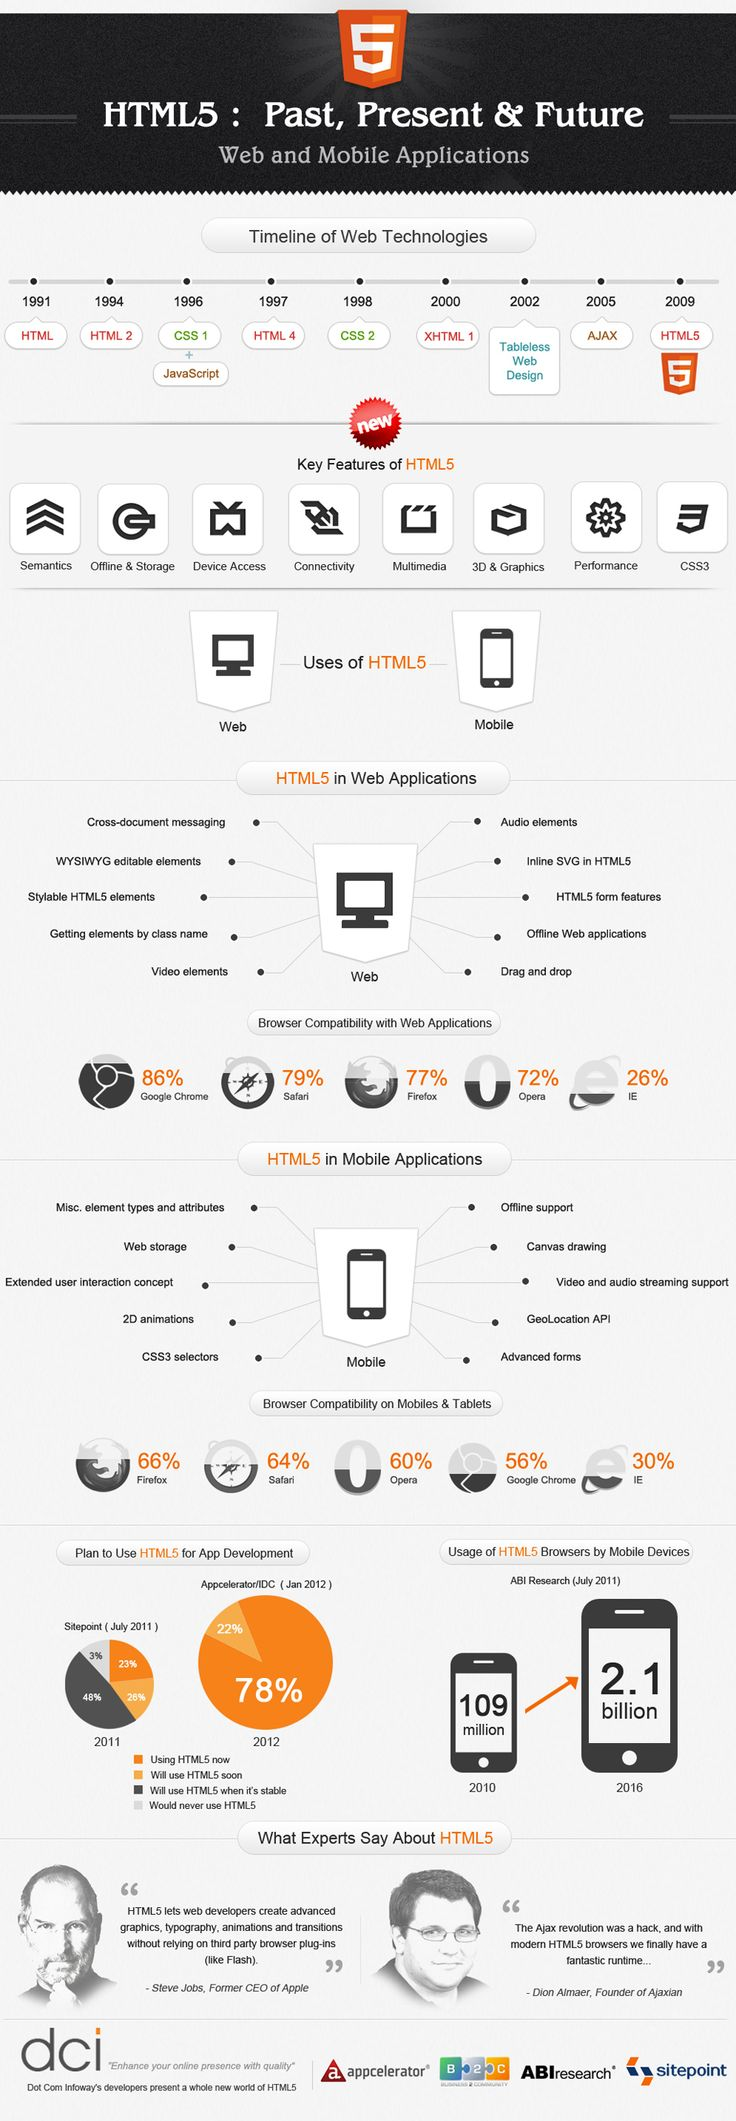 Html5 past, present, future infographic.